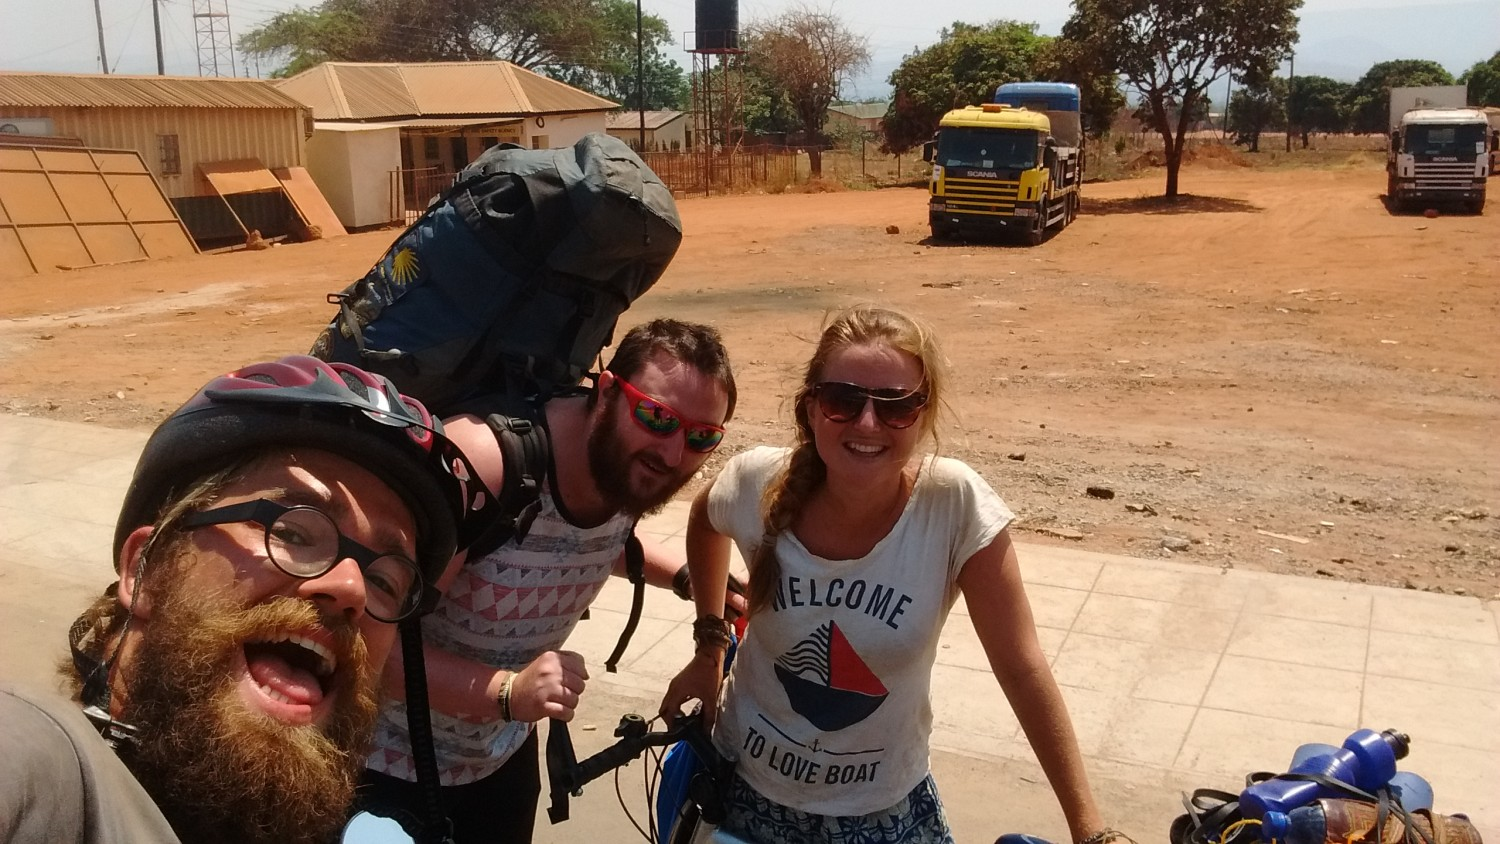 Crossing the border from Malawi to Zambia